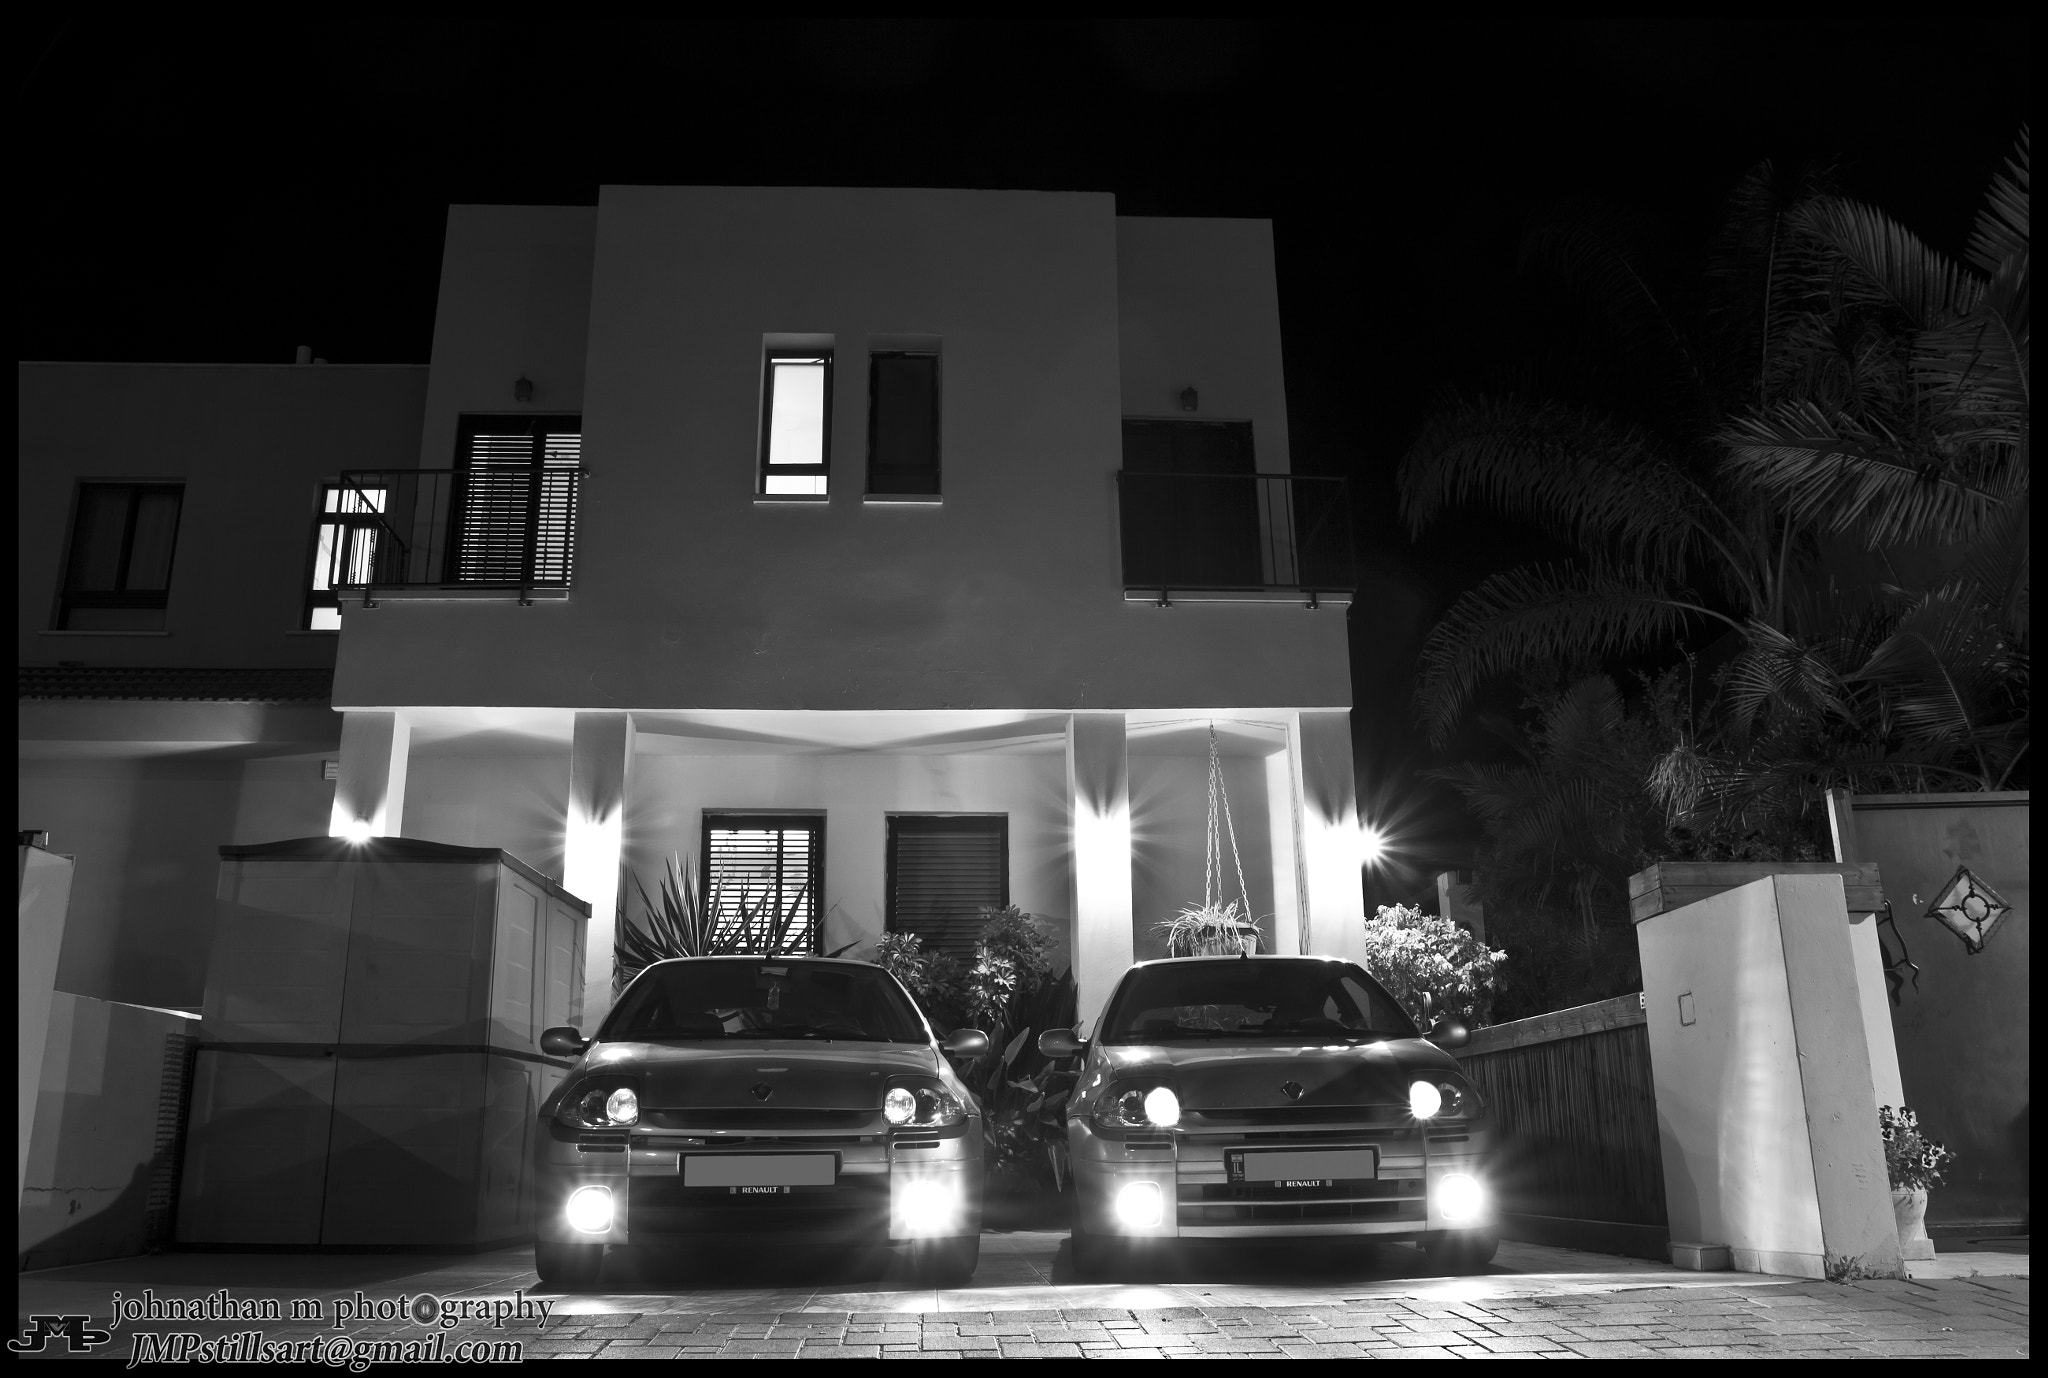 Photograph 344 BHP BW by Johnathan Maytliss on 500px